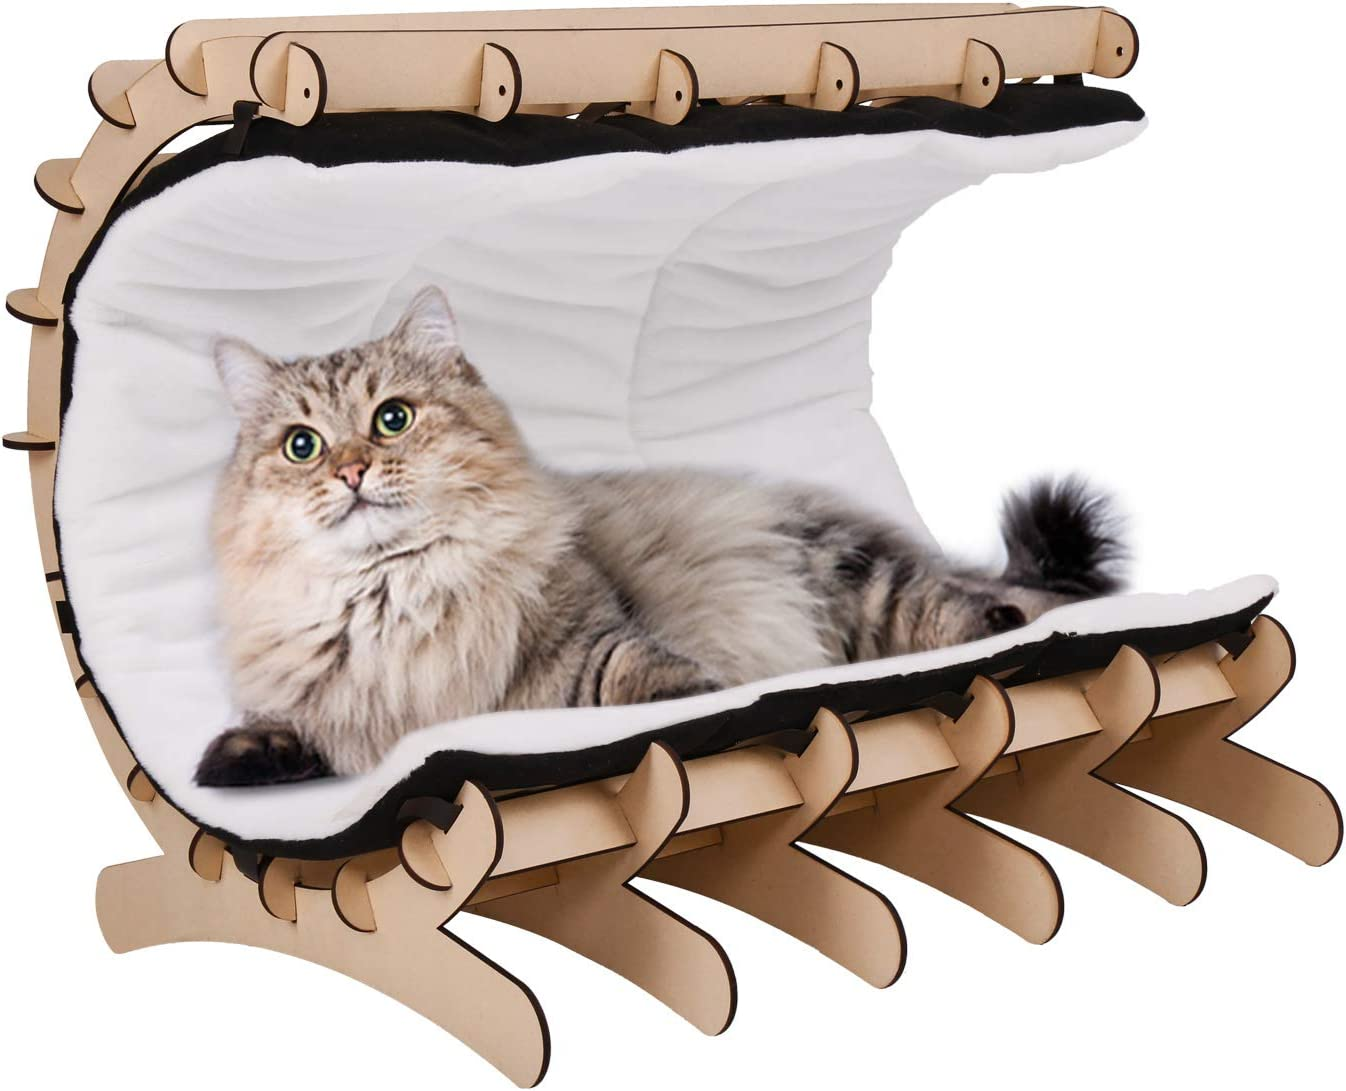 Peachtree Press Inc Cat Bed Cat Hammock Wooden Cat Castle Cat House Furniture with Washable Cushion Pet Scratching Posts Cat Cave with Toys